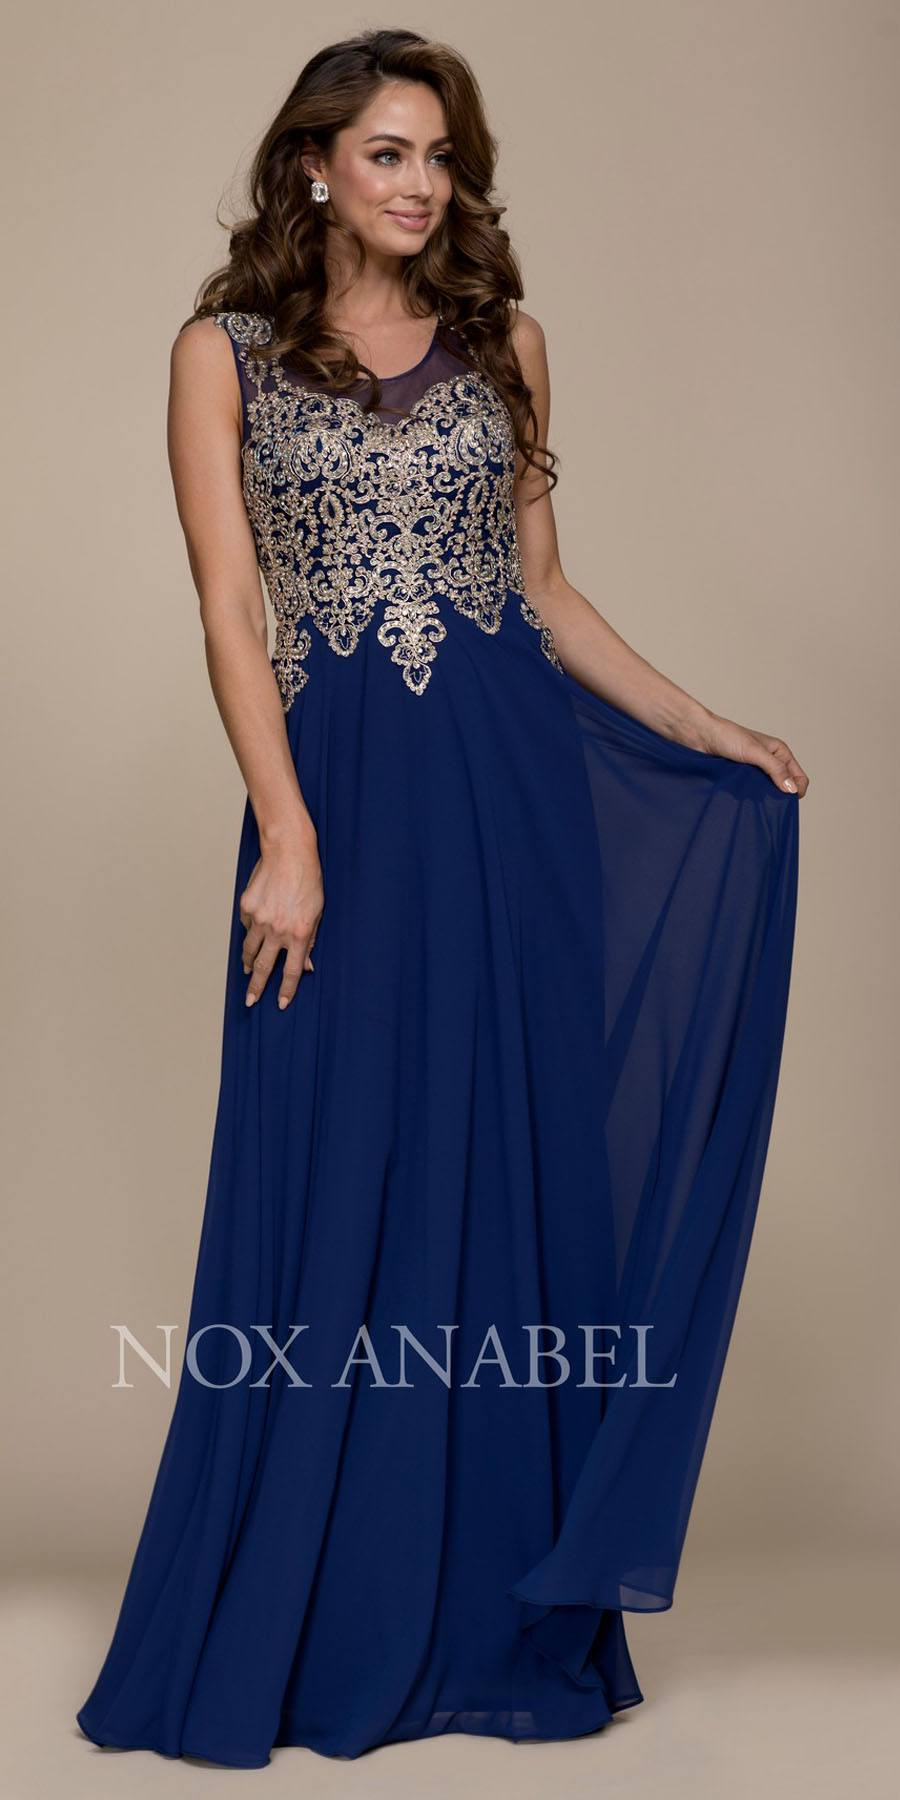 2019 year for women- Blue navy and gold prom dress